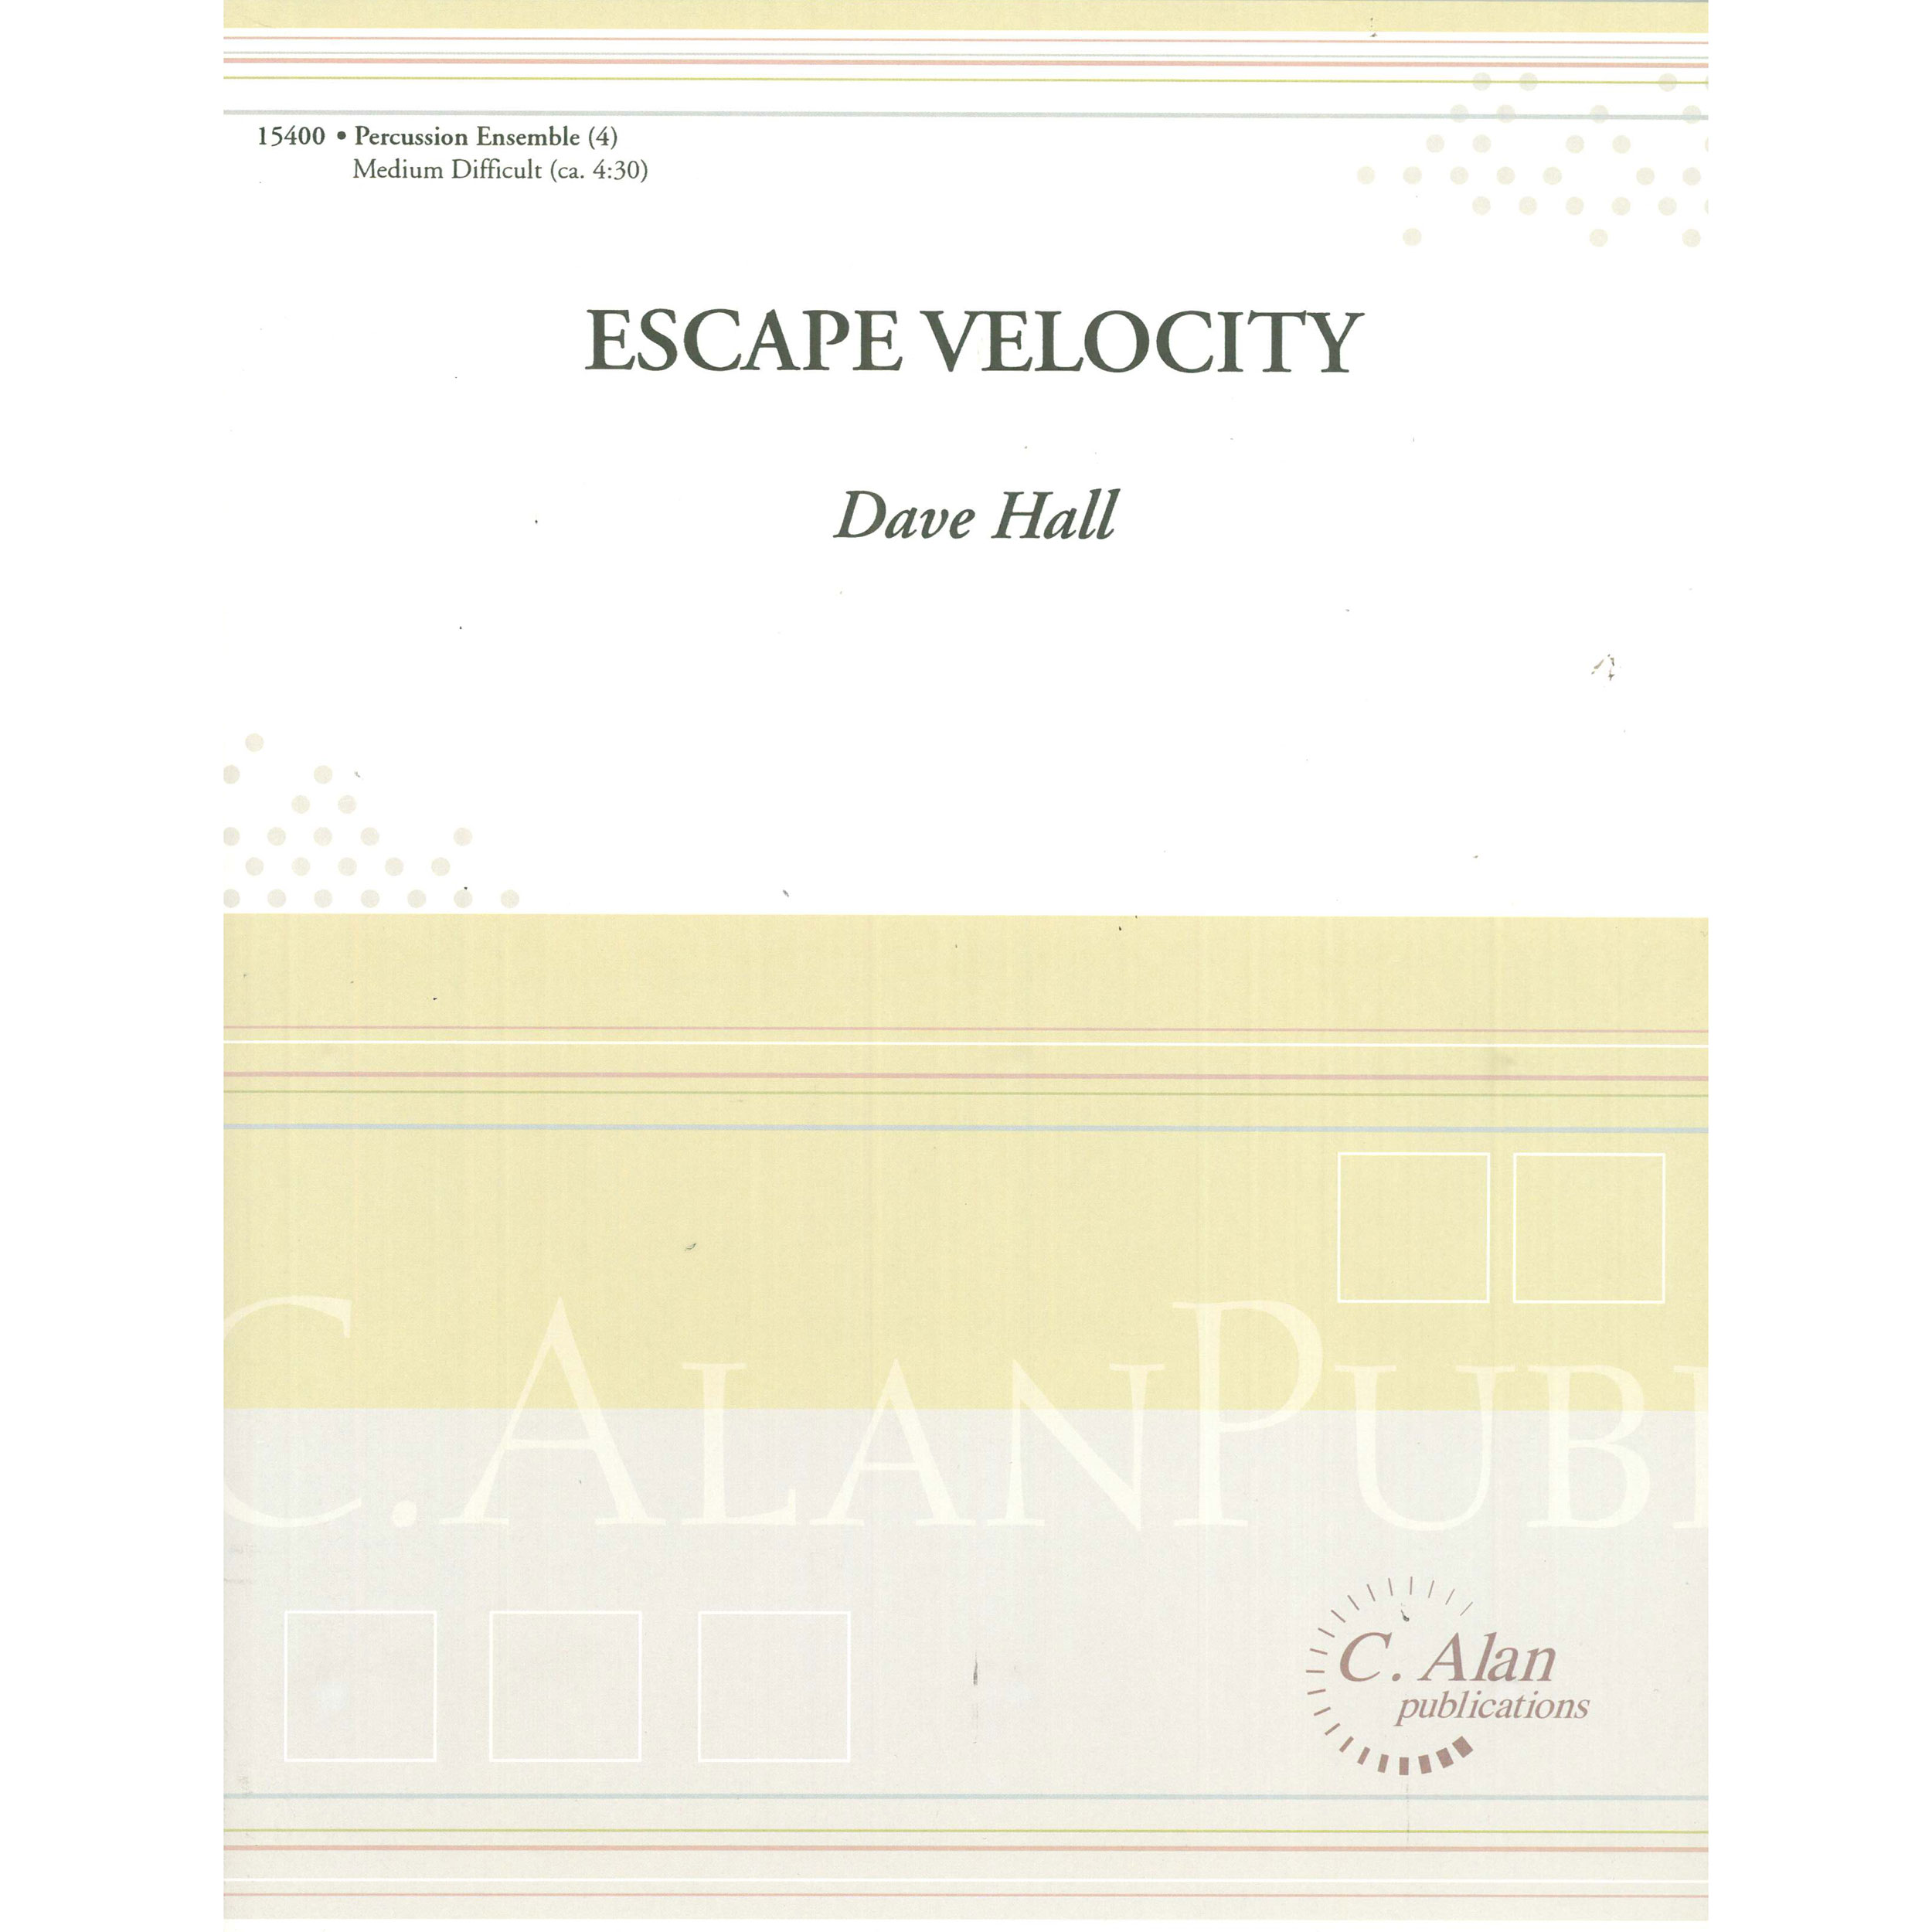 Escape Velocity by Dave Hall